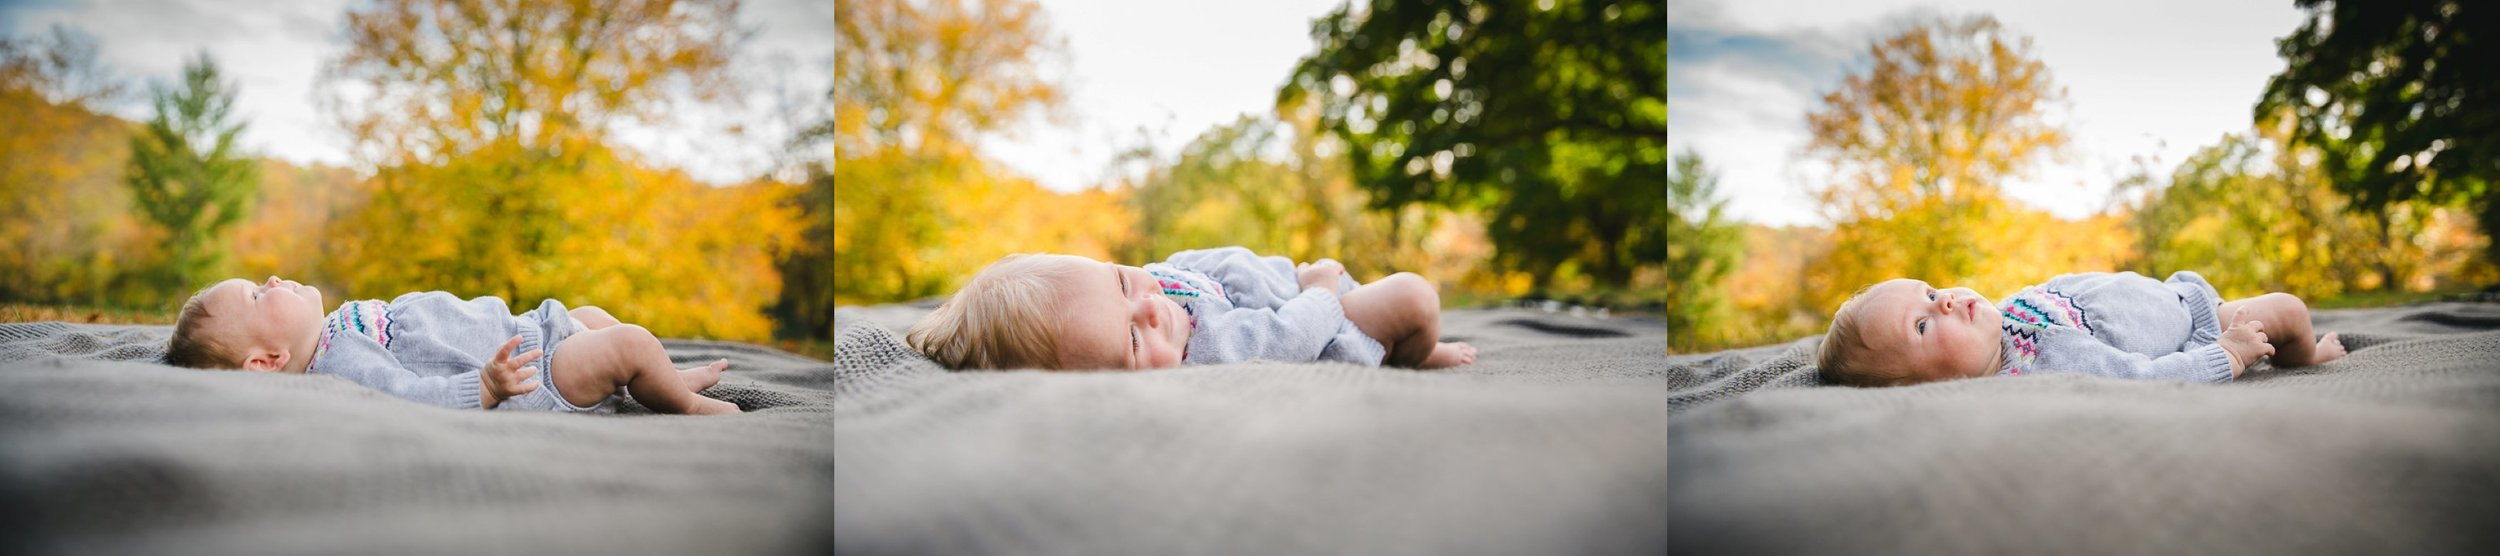 lovely baby exploring the beautiful environment of a baltimore park while lying on the ground